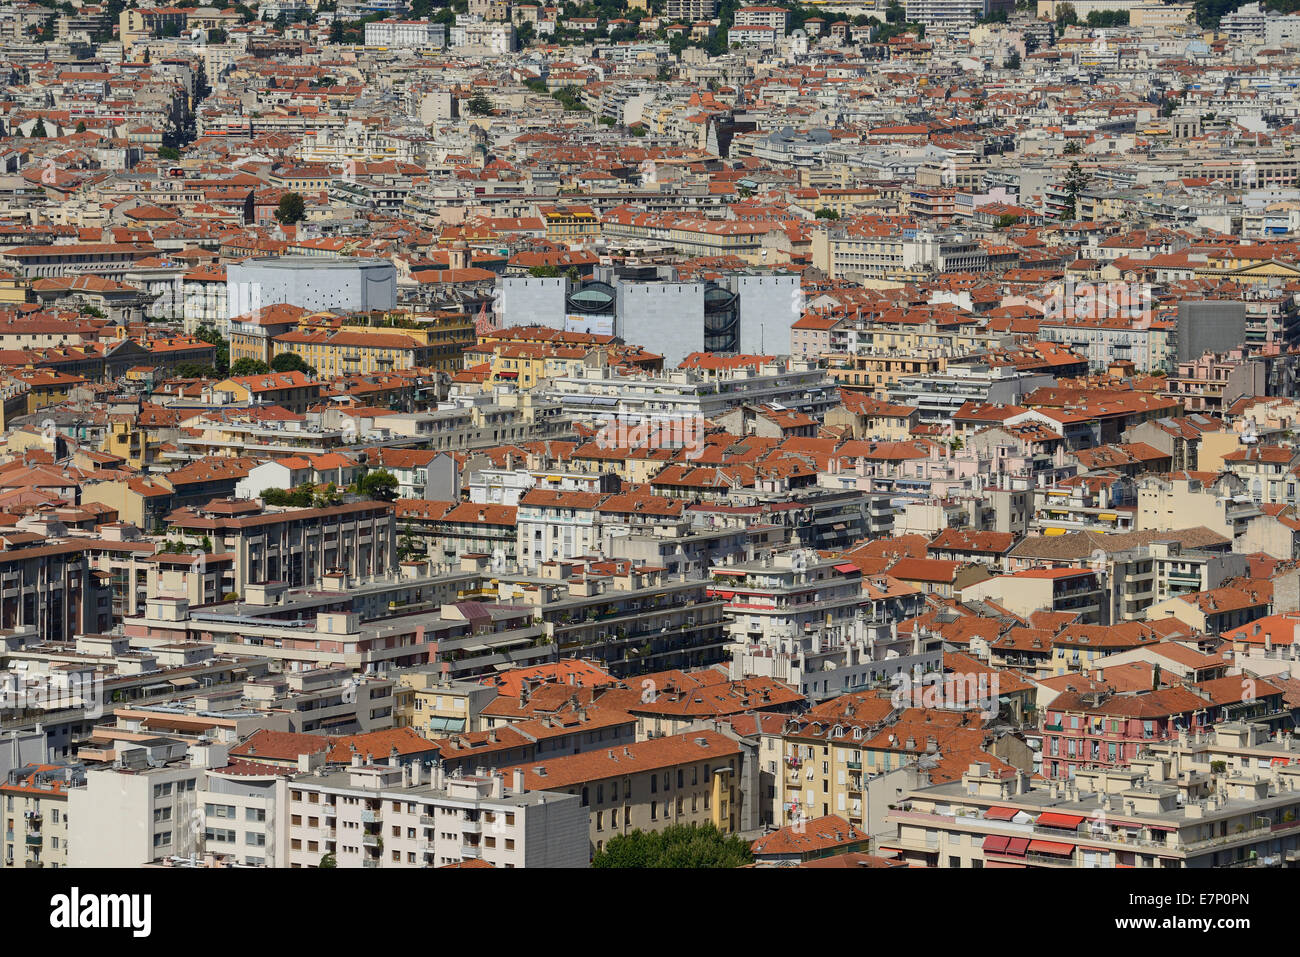 Europe, France, Cote d'Azur, Nice, Nizza, roofs, city, Riviera, town - Stock Image